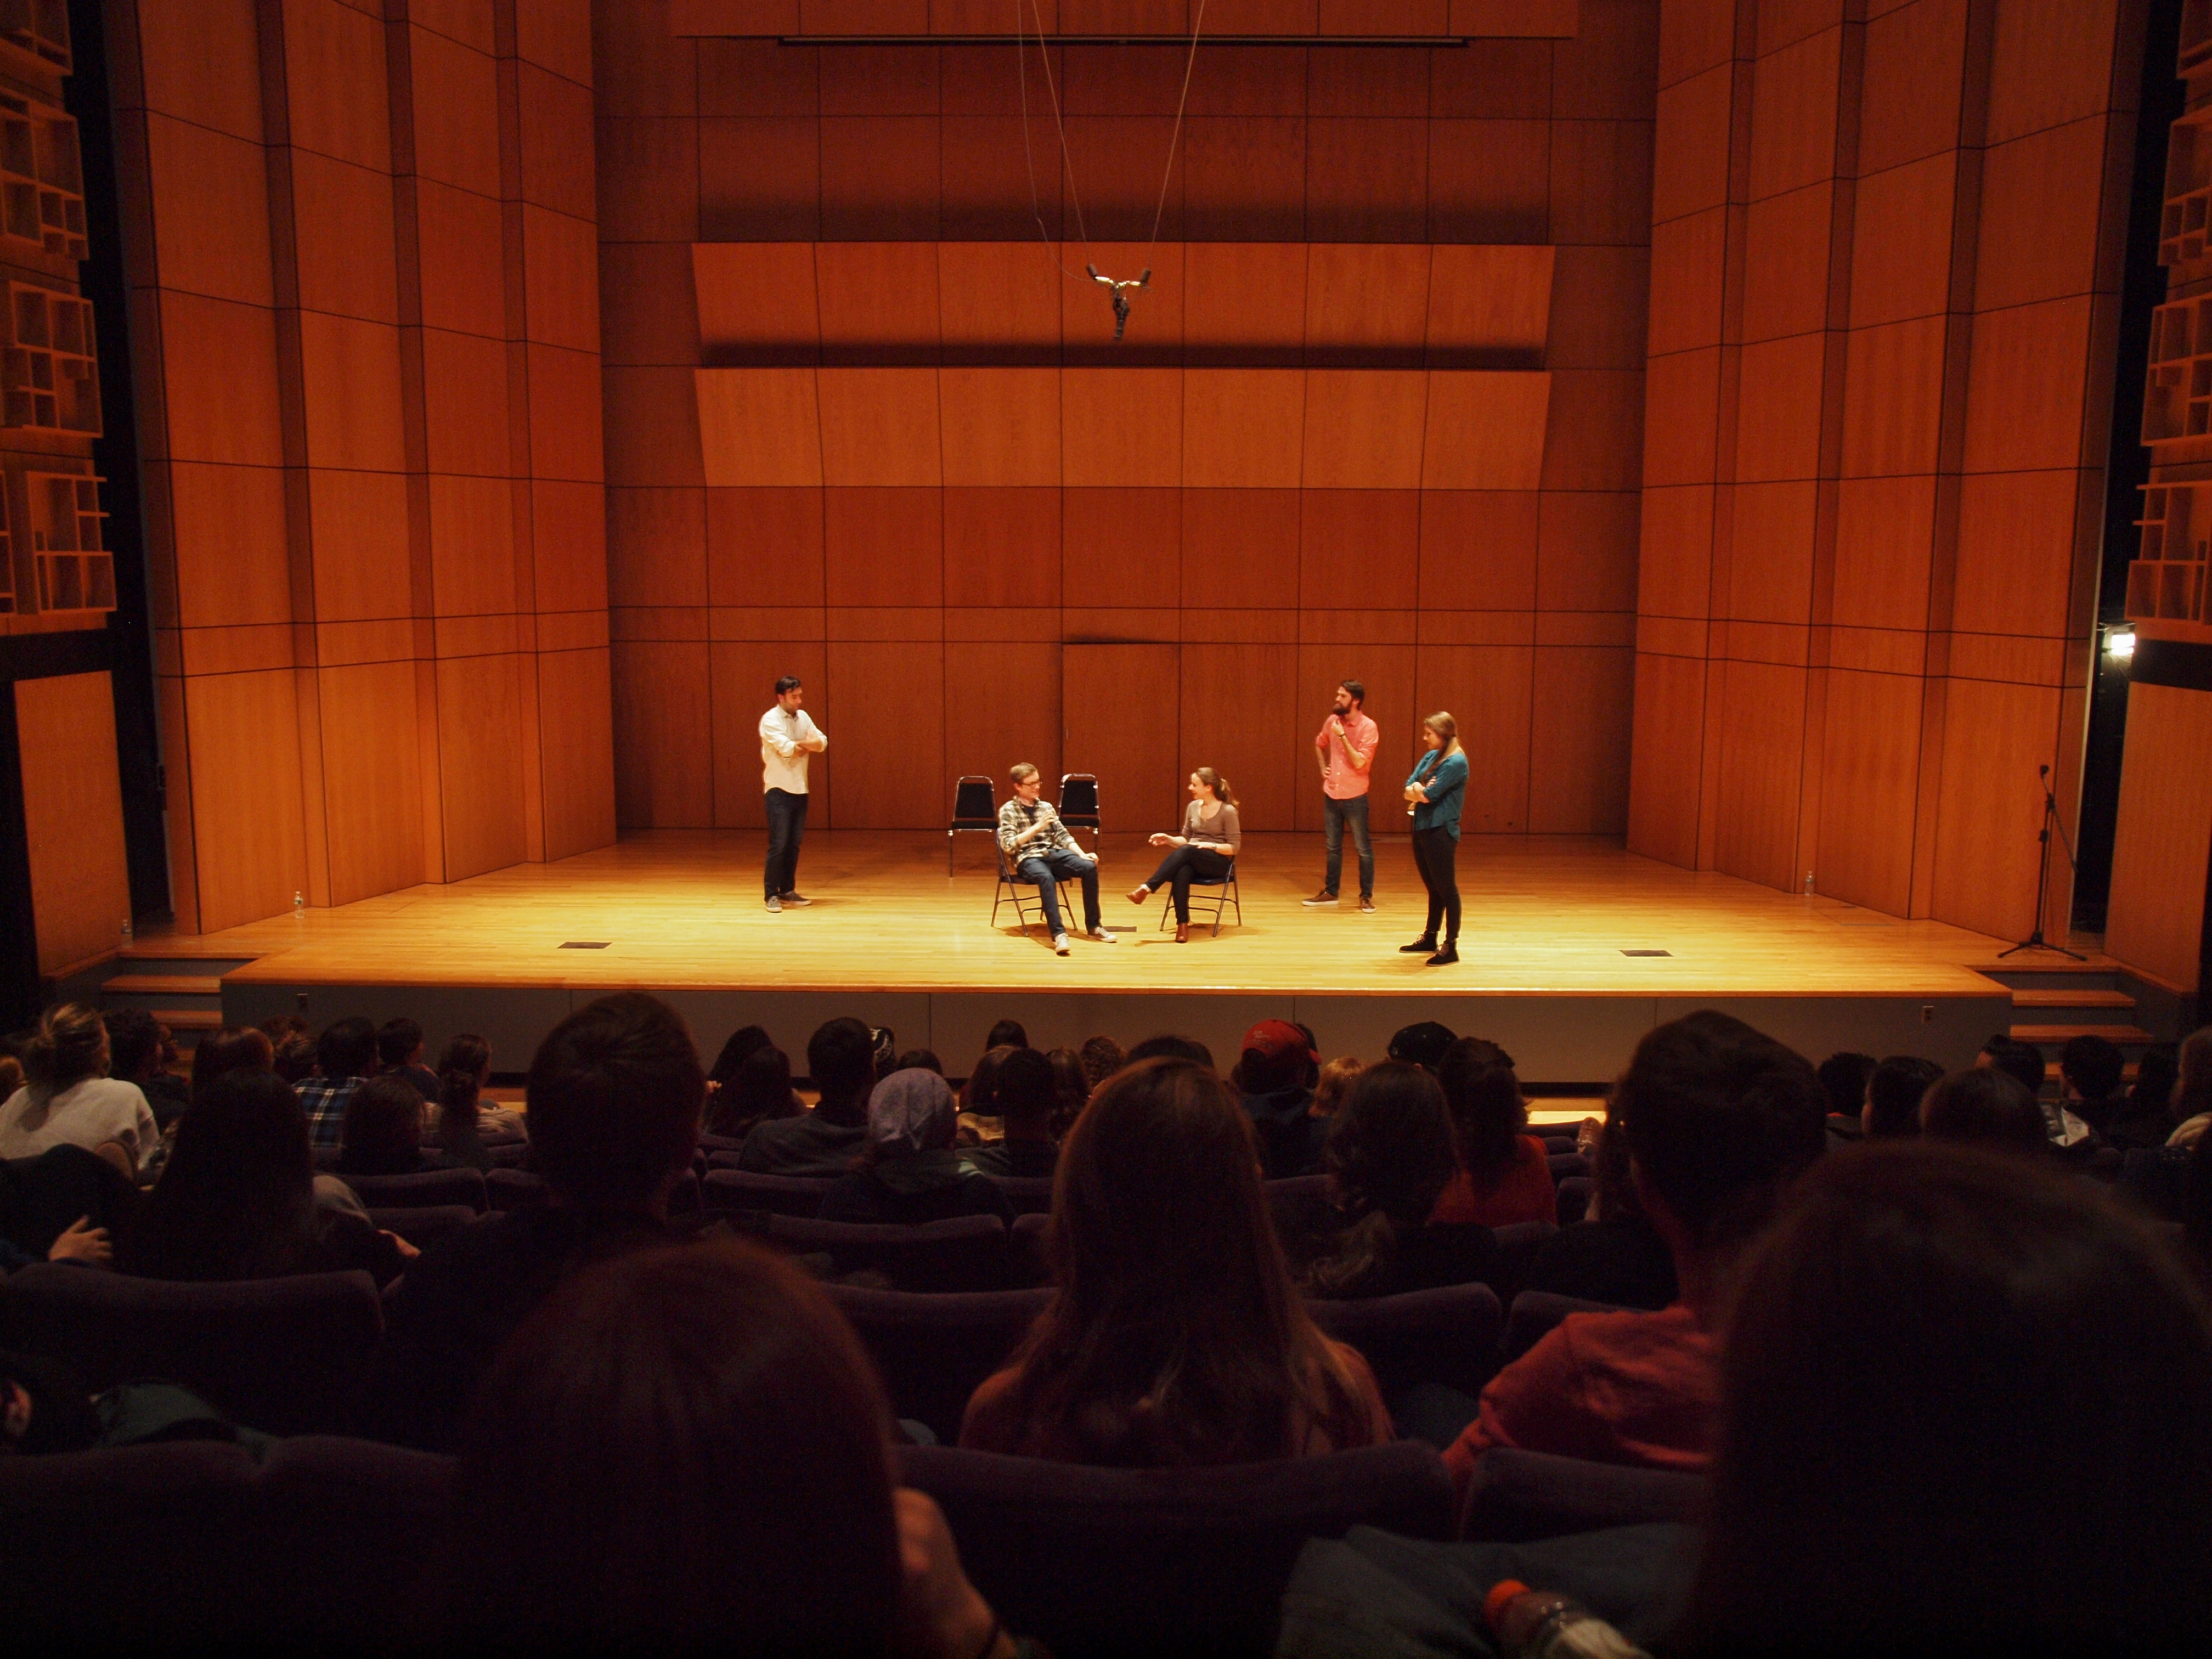 An improv groups interviews a student on stage